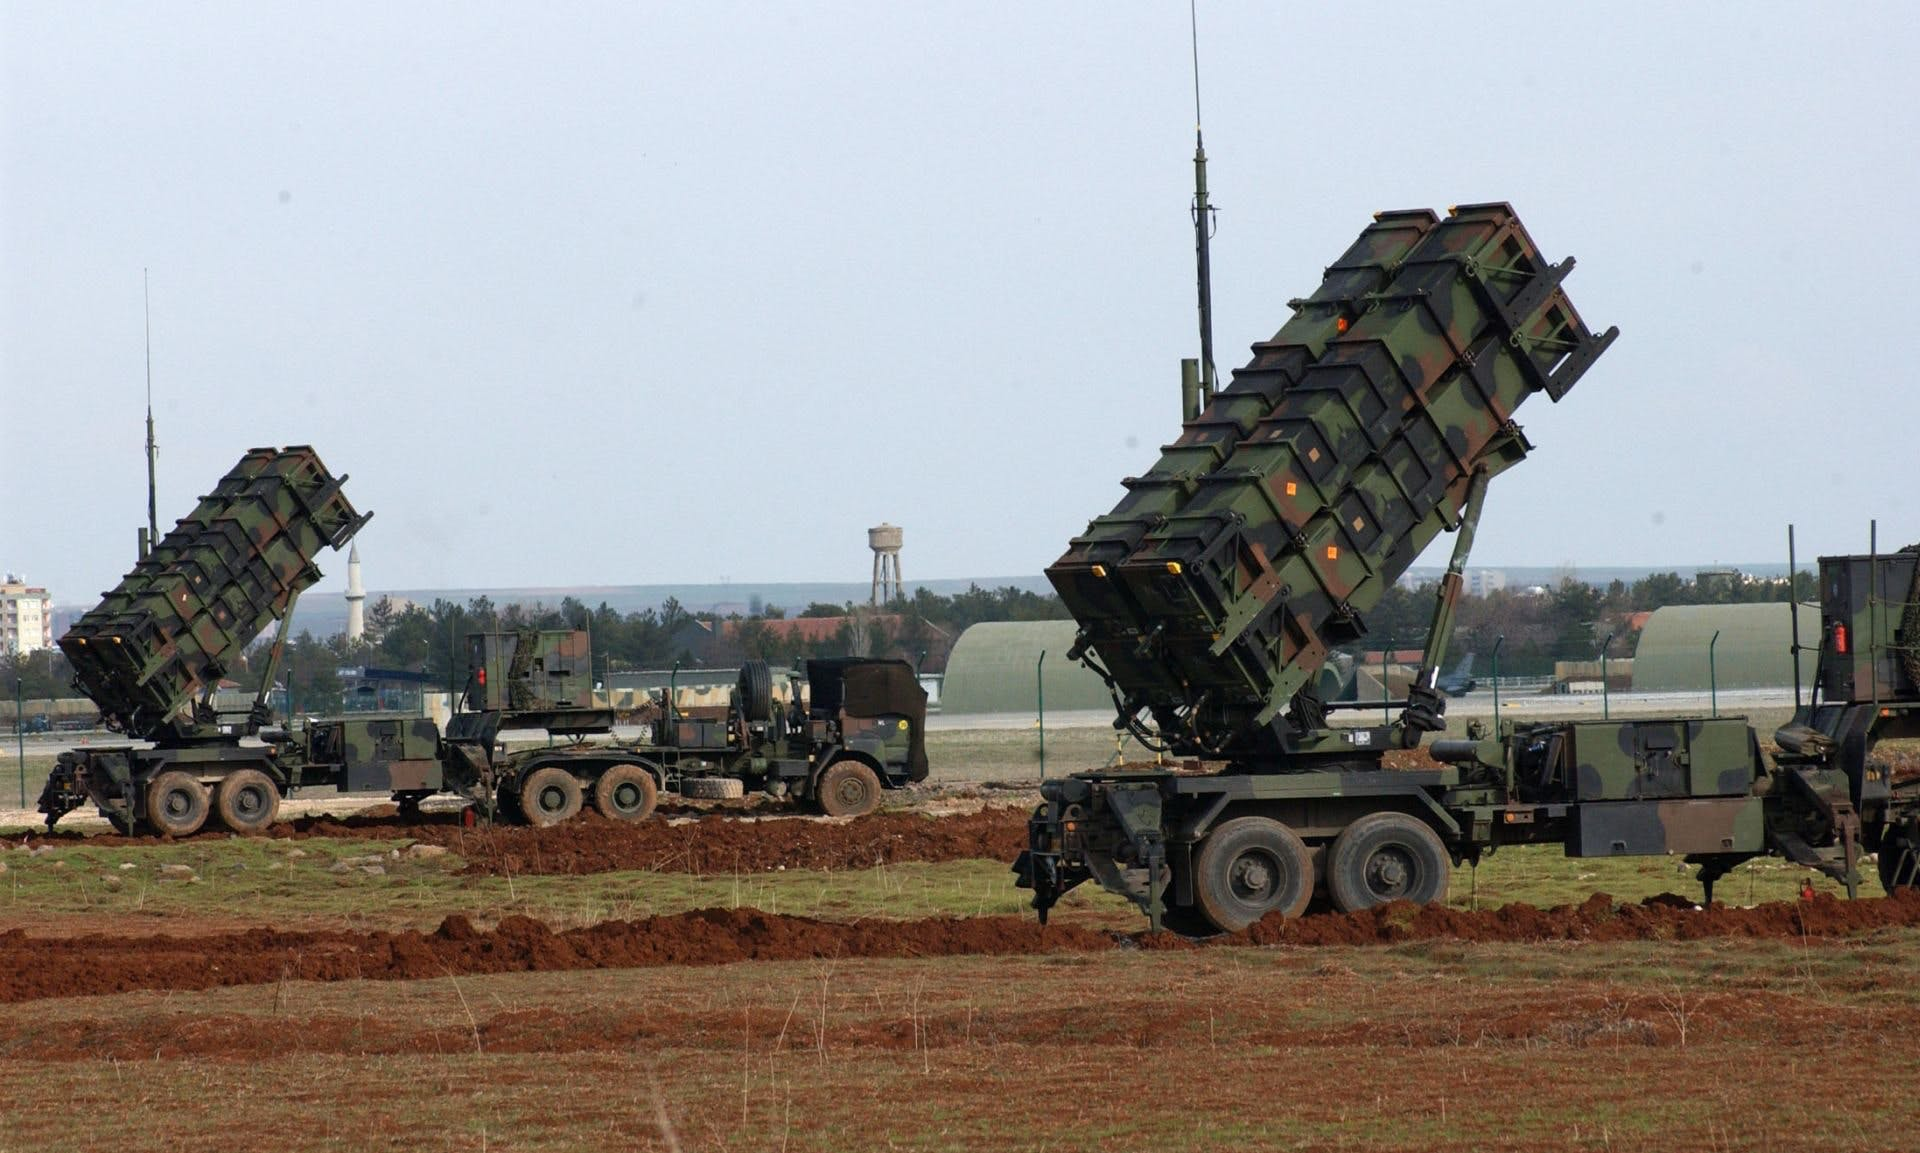 Bahrain signs deal to buy Patriot missile system